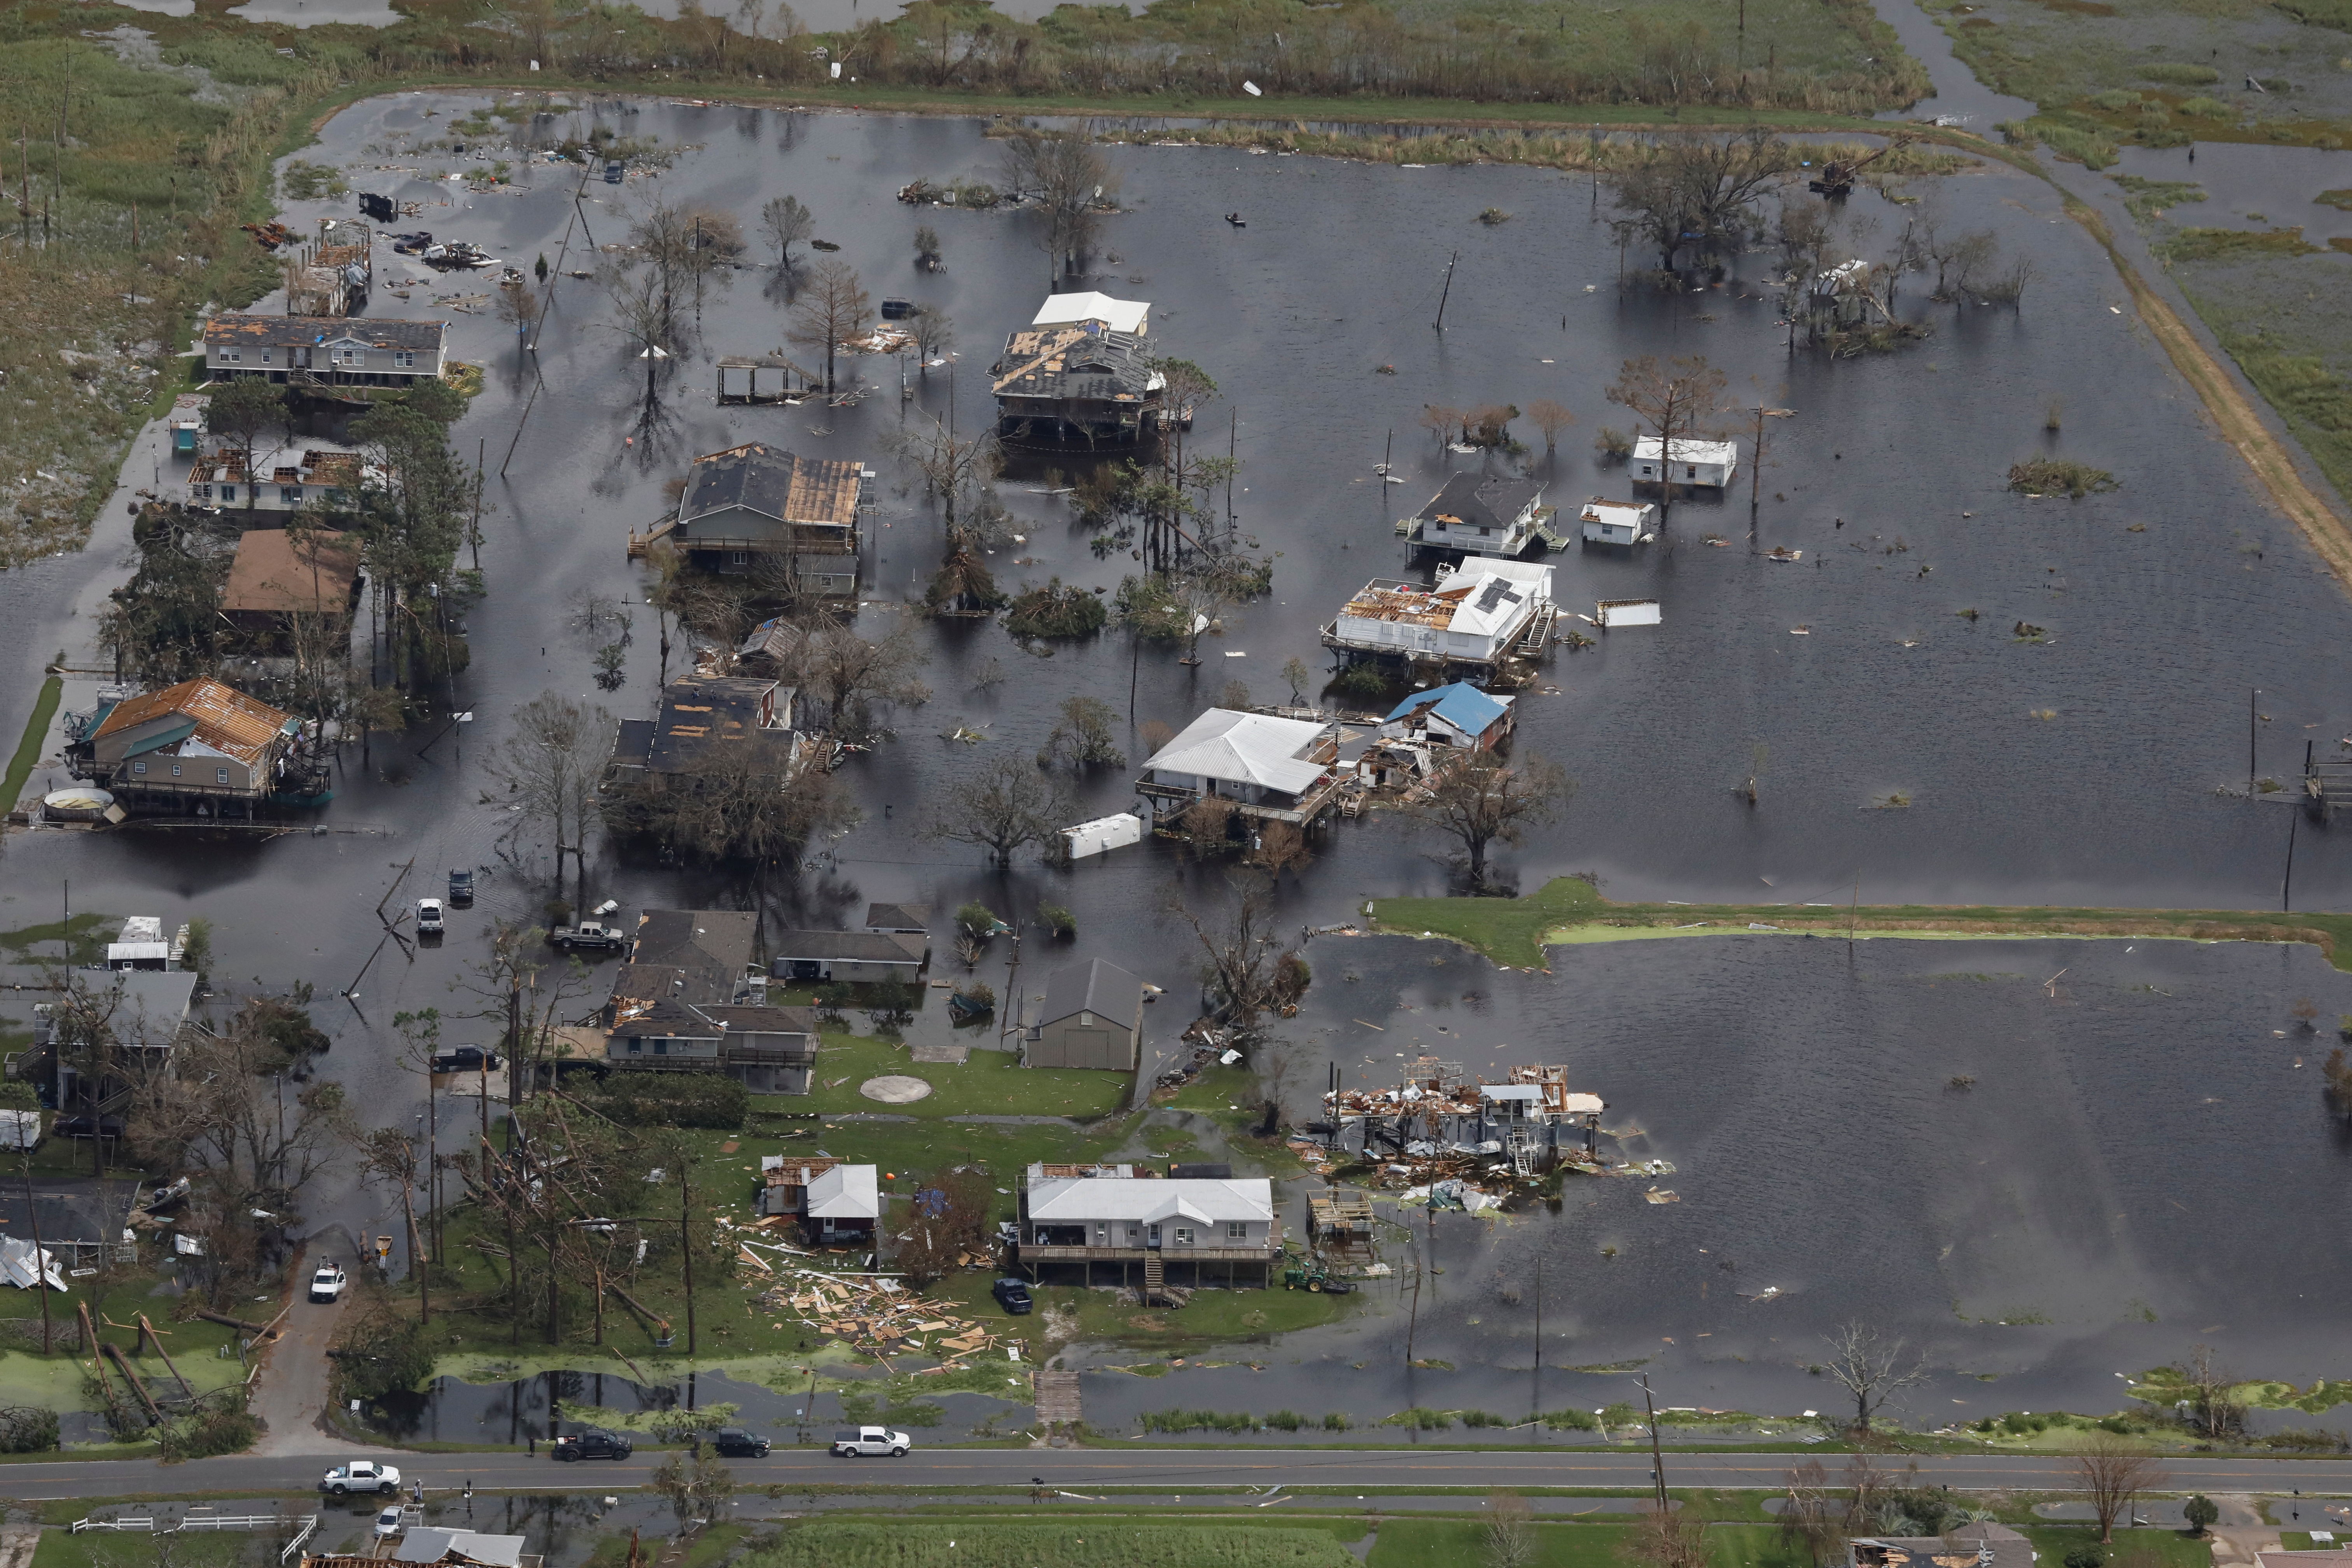 An aerial view shows destroyed houses in a flooded area after Hurricane Ida made landfall in Louisiana, in Montegut, Louisiana, U.S. August 31, 2021. REUTERS/Marco Bello